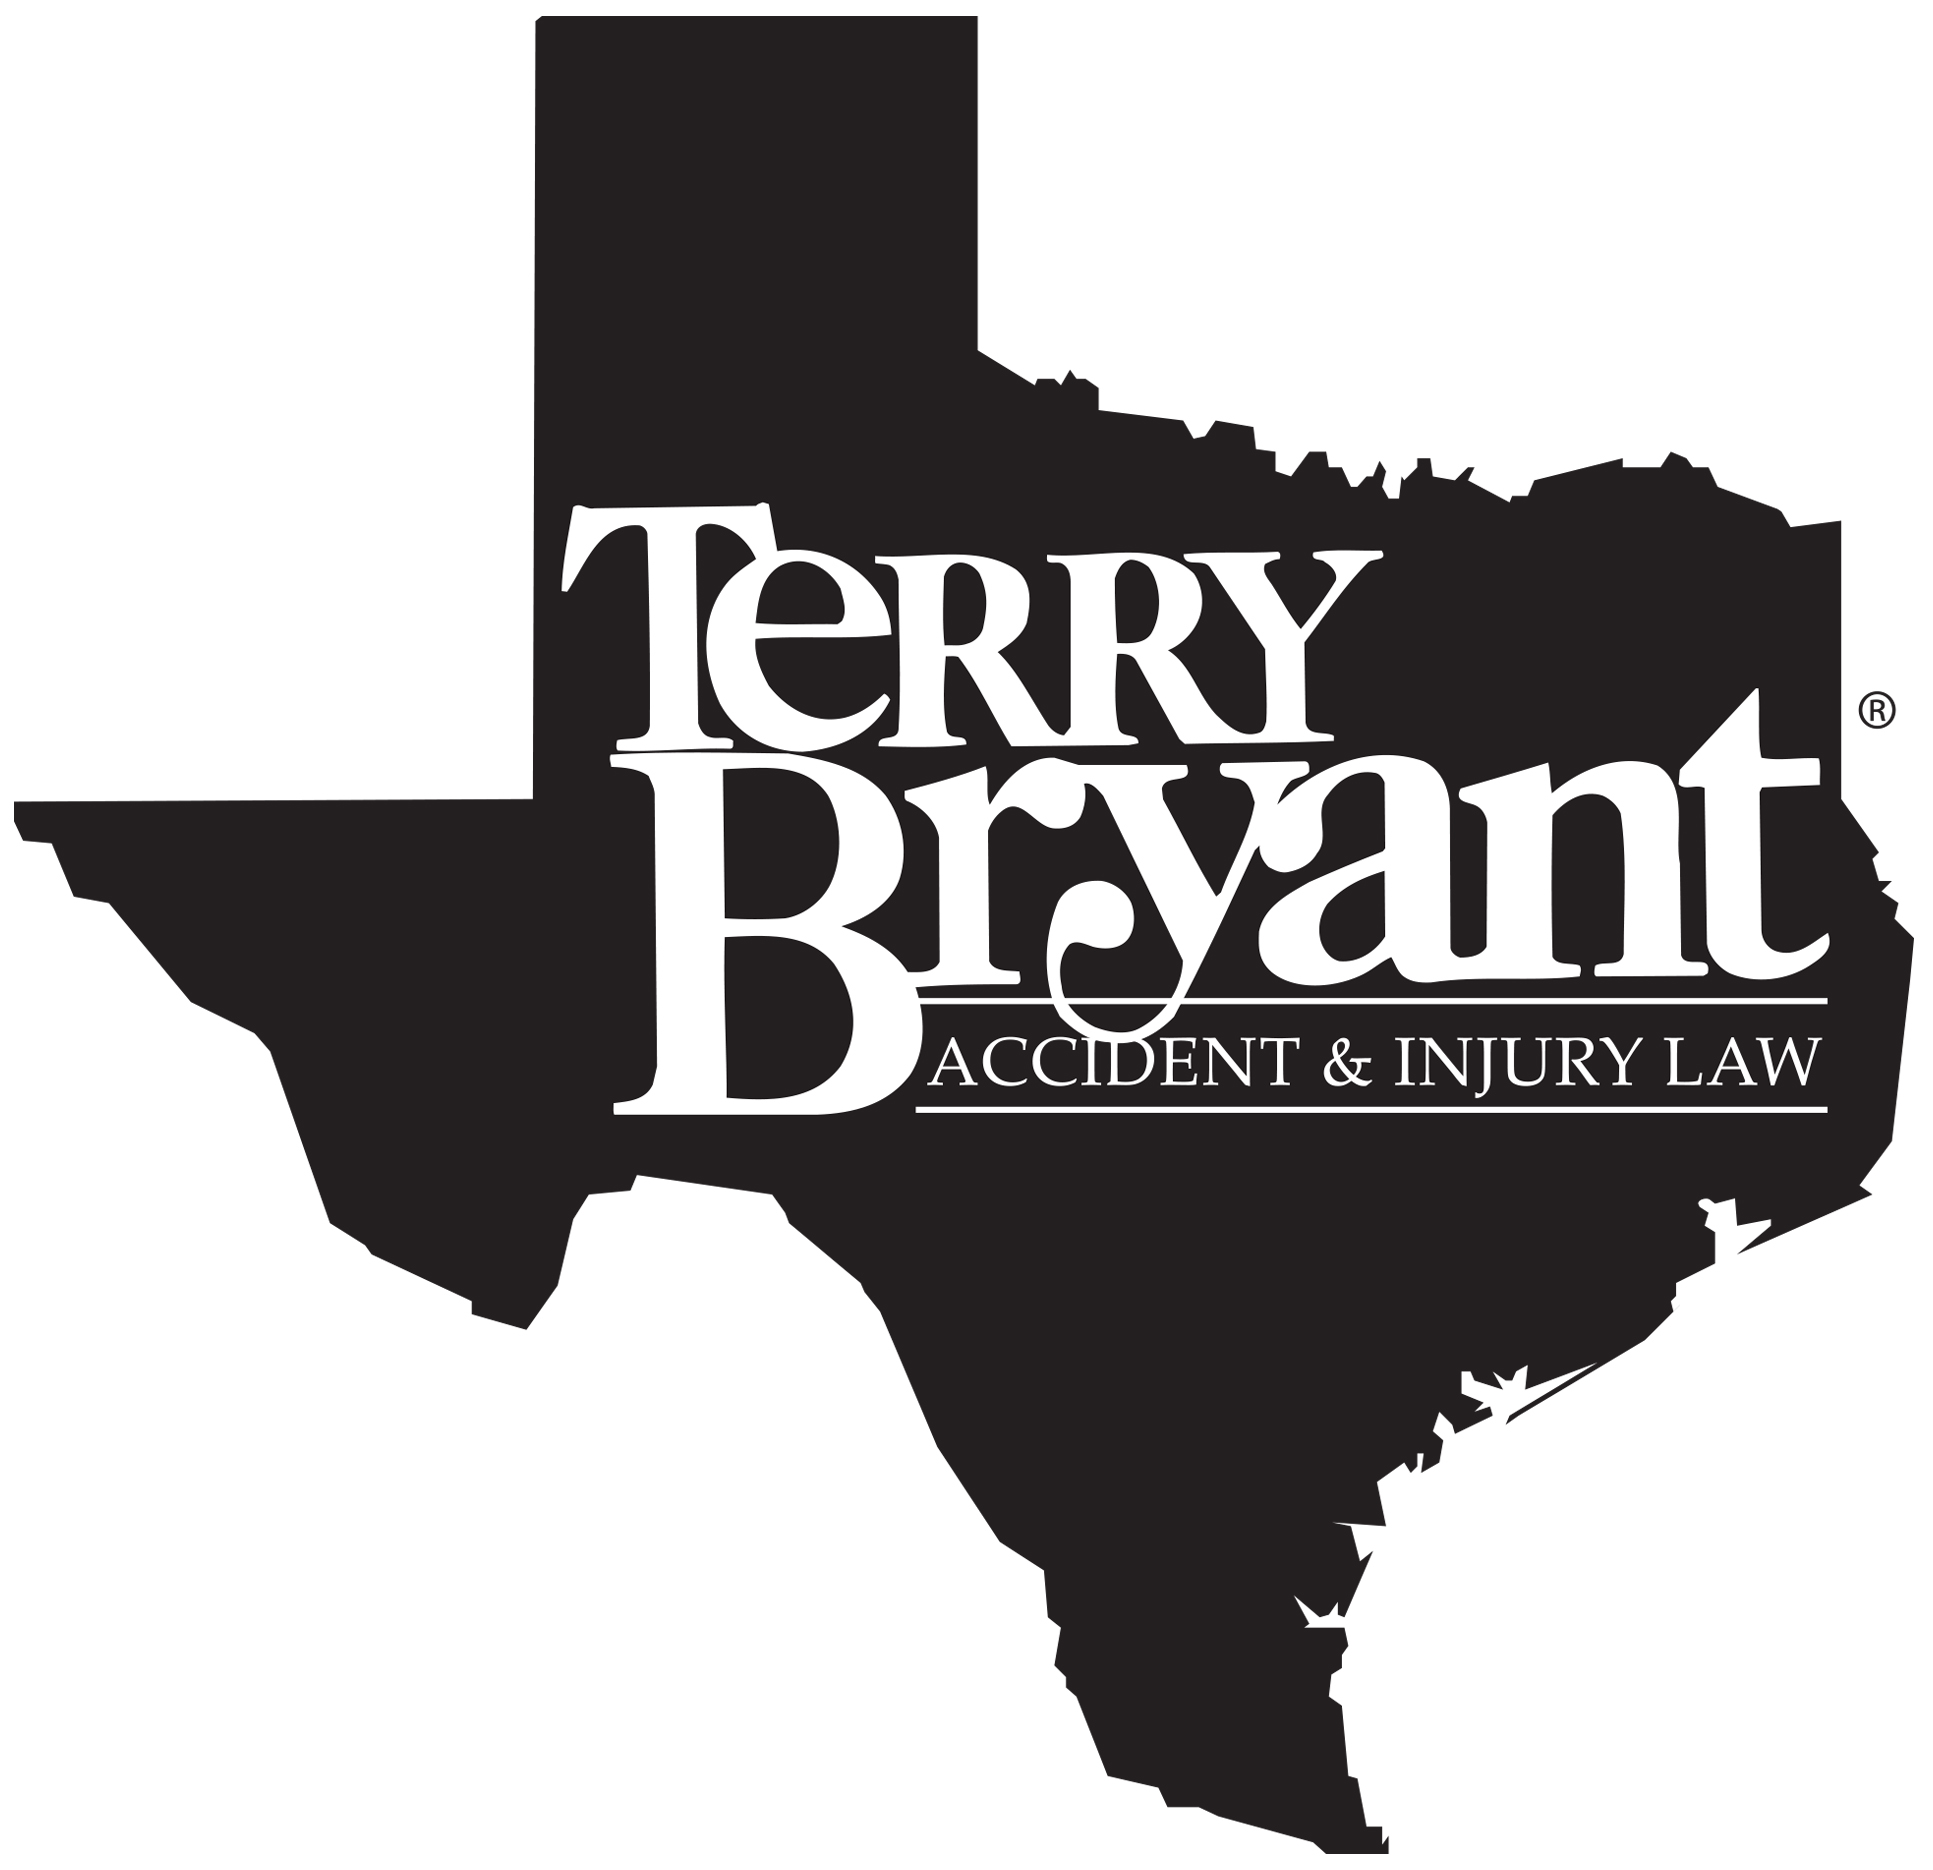 Terry Bryant Accident & Injury Law